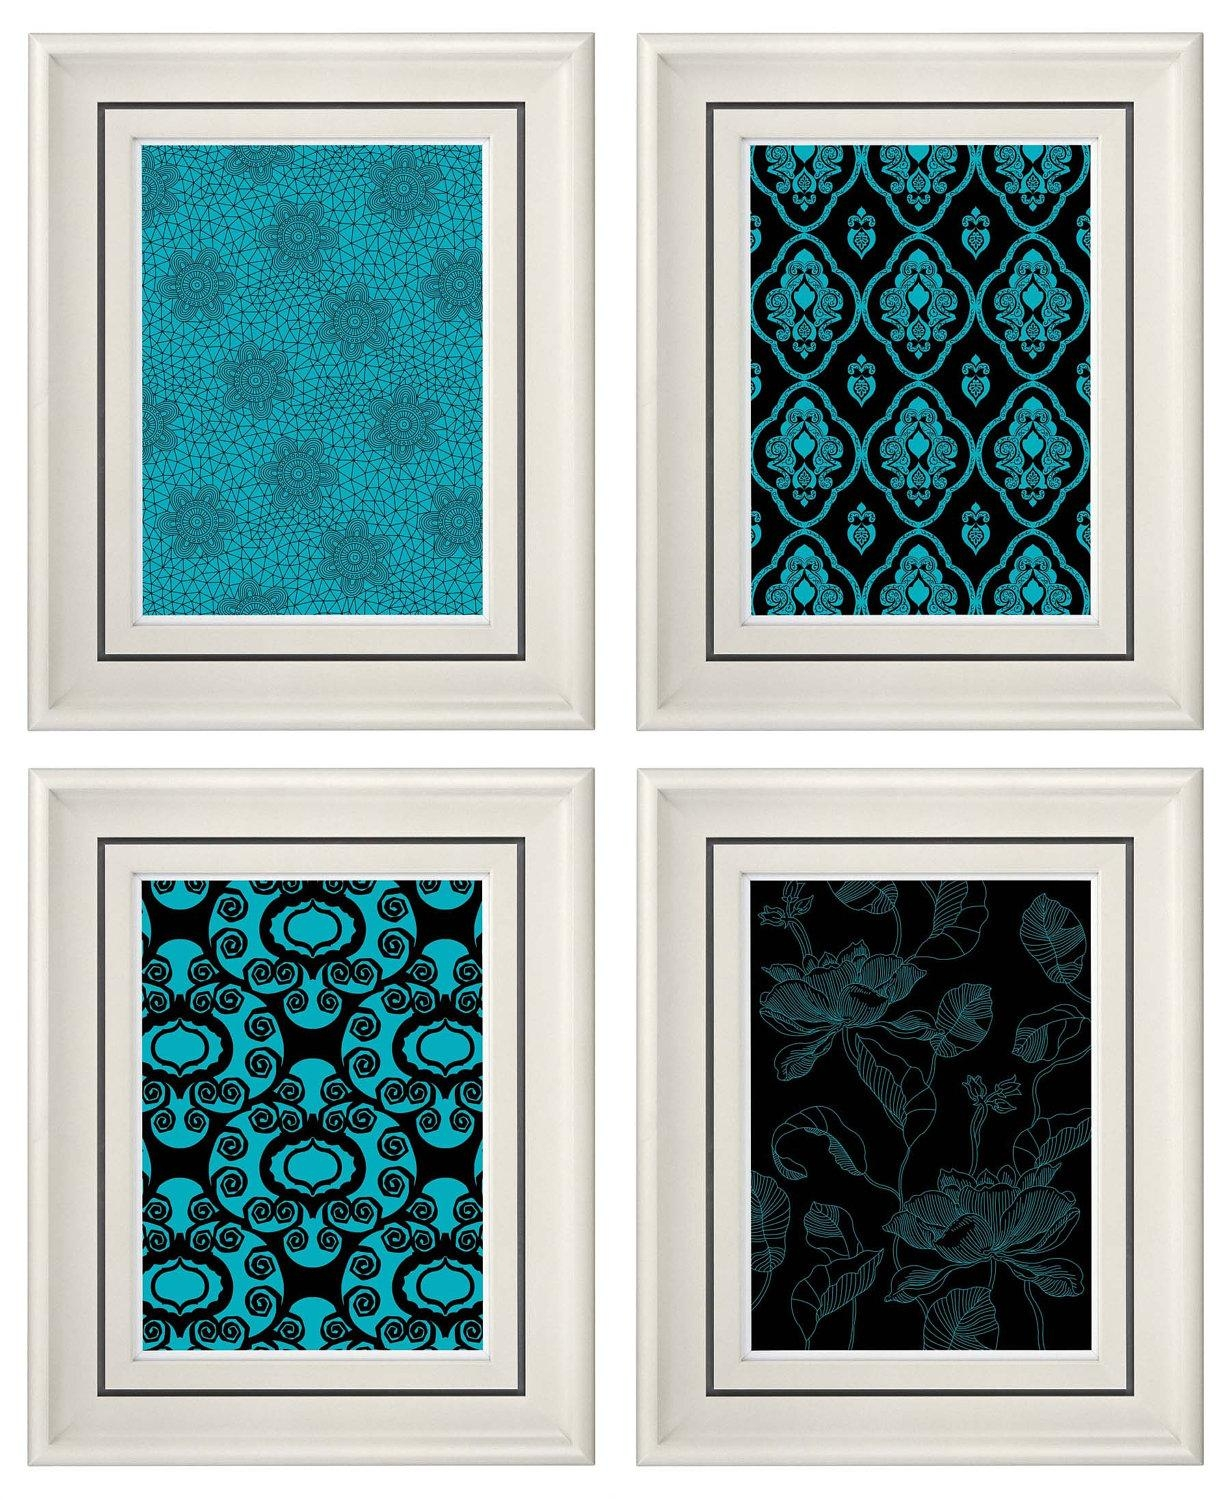 Wall Decor Turquoise – Home Design Regarding Turquoise And Black Wall Art (View 3 of 20)